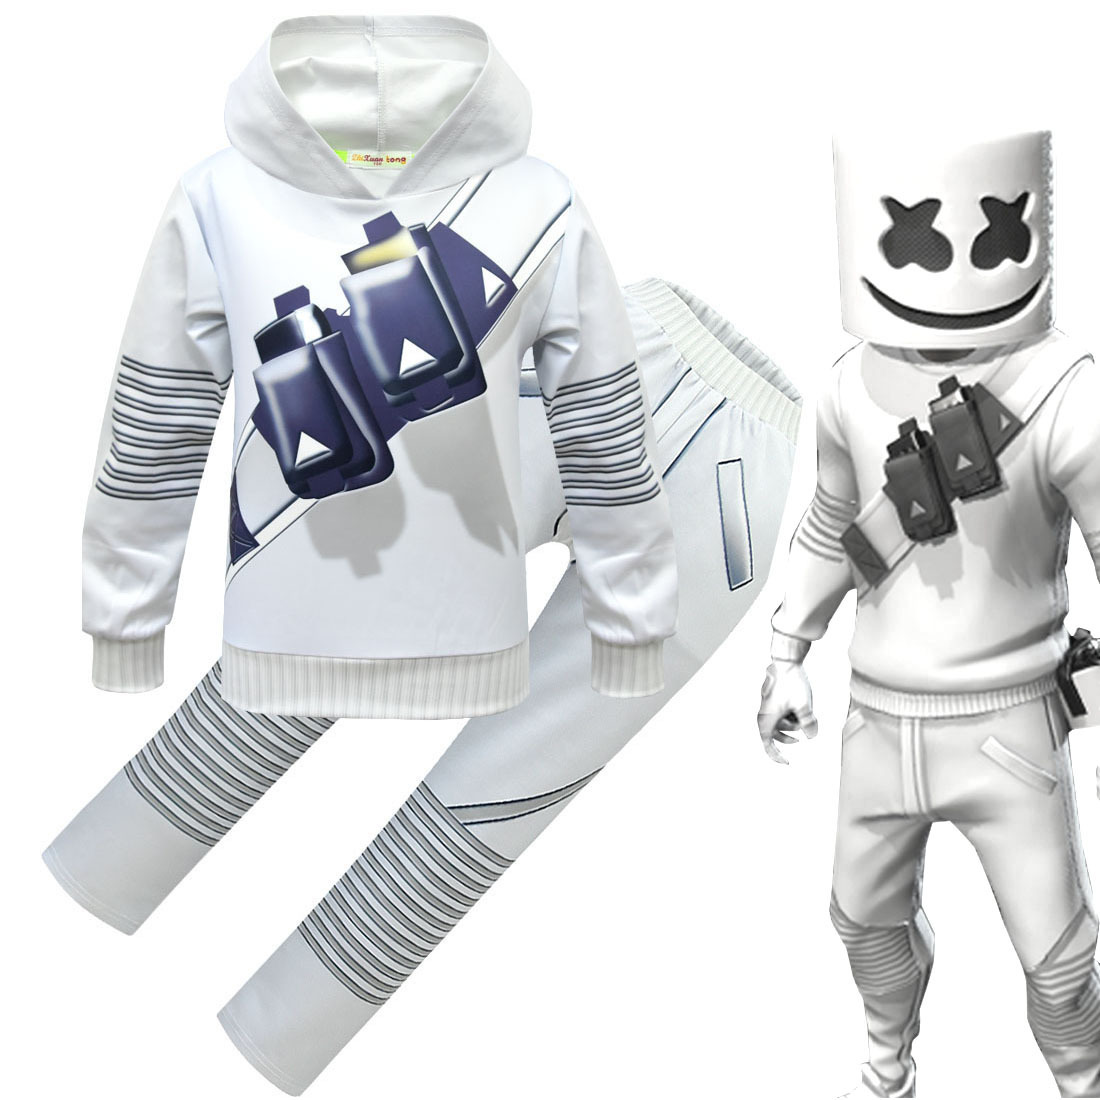 Hot Fashion DJ Marshmello Cosplay 3D Print Hooded Kids Casual Sweatshirt Pullover Clothes with Full Face Luminous Mask Helmet